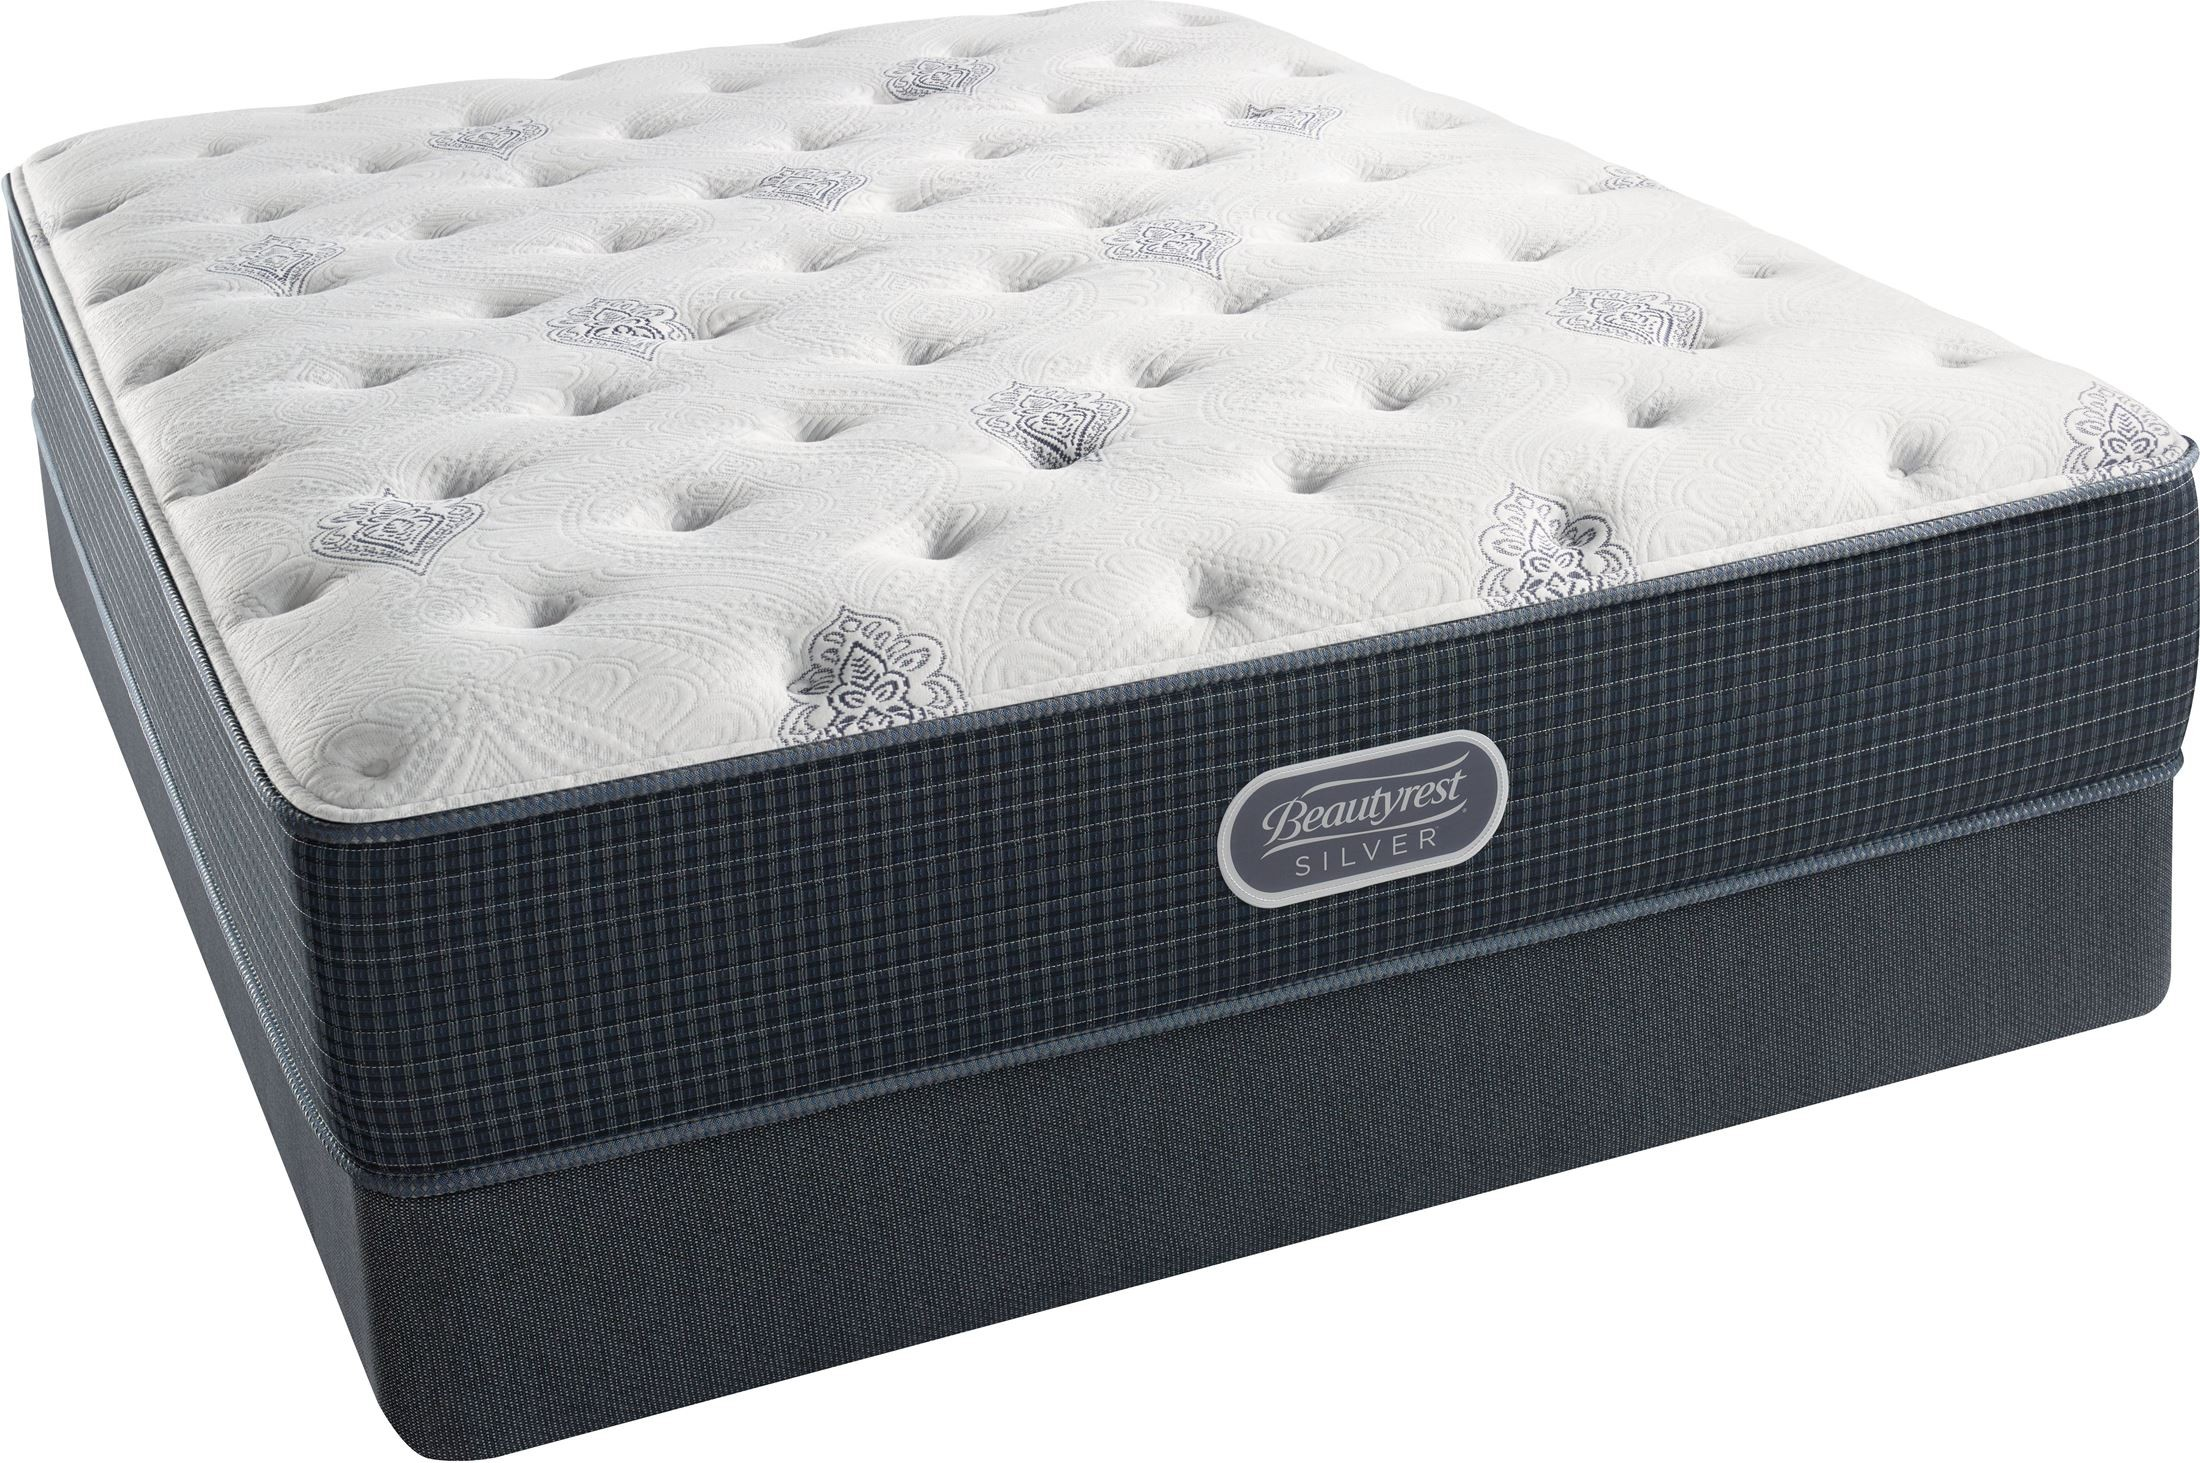 Br recharge br silver offshore mist tight top plush queen size mattress with foundation Queen size mattress price